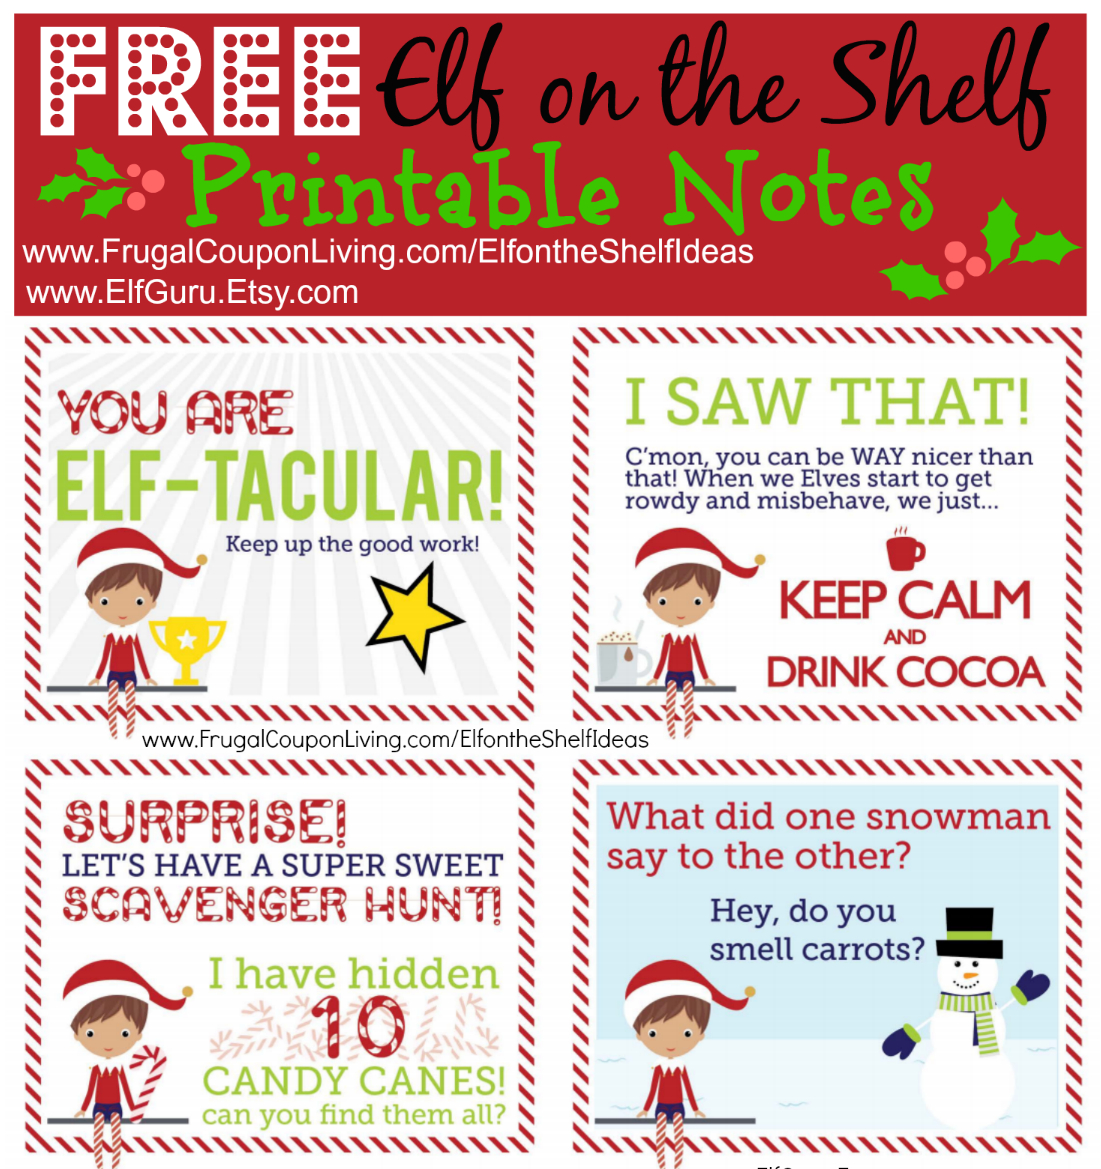 Elf On The Shelf Ideas | Free Elf Scavenger Hunt Note - Free Printable Elf On The Shelf Story